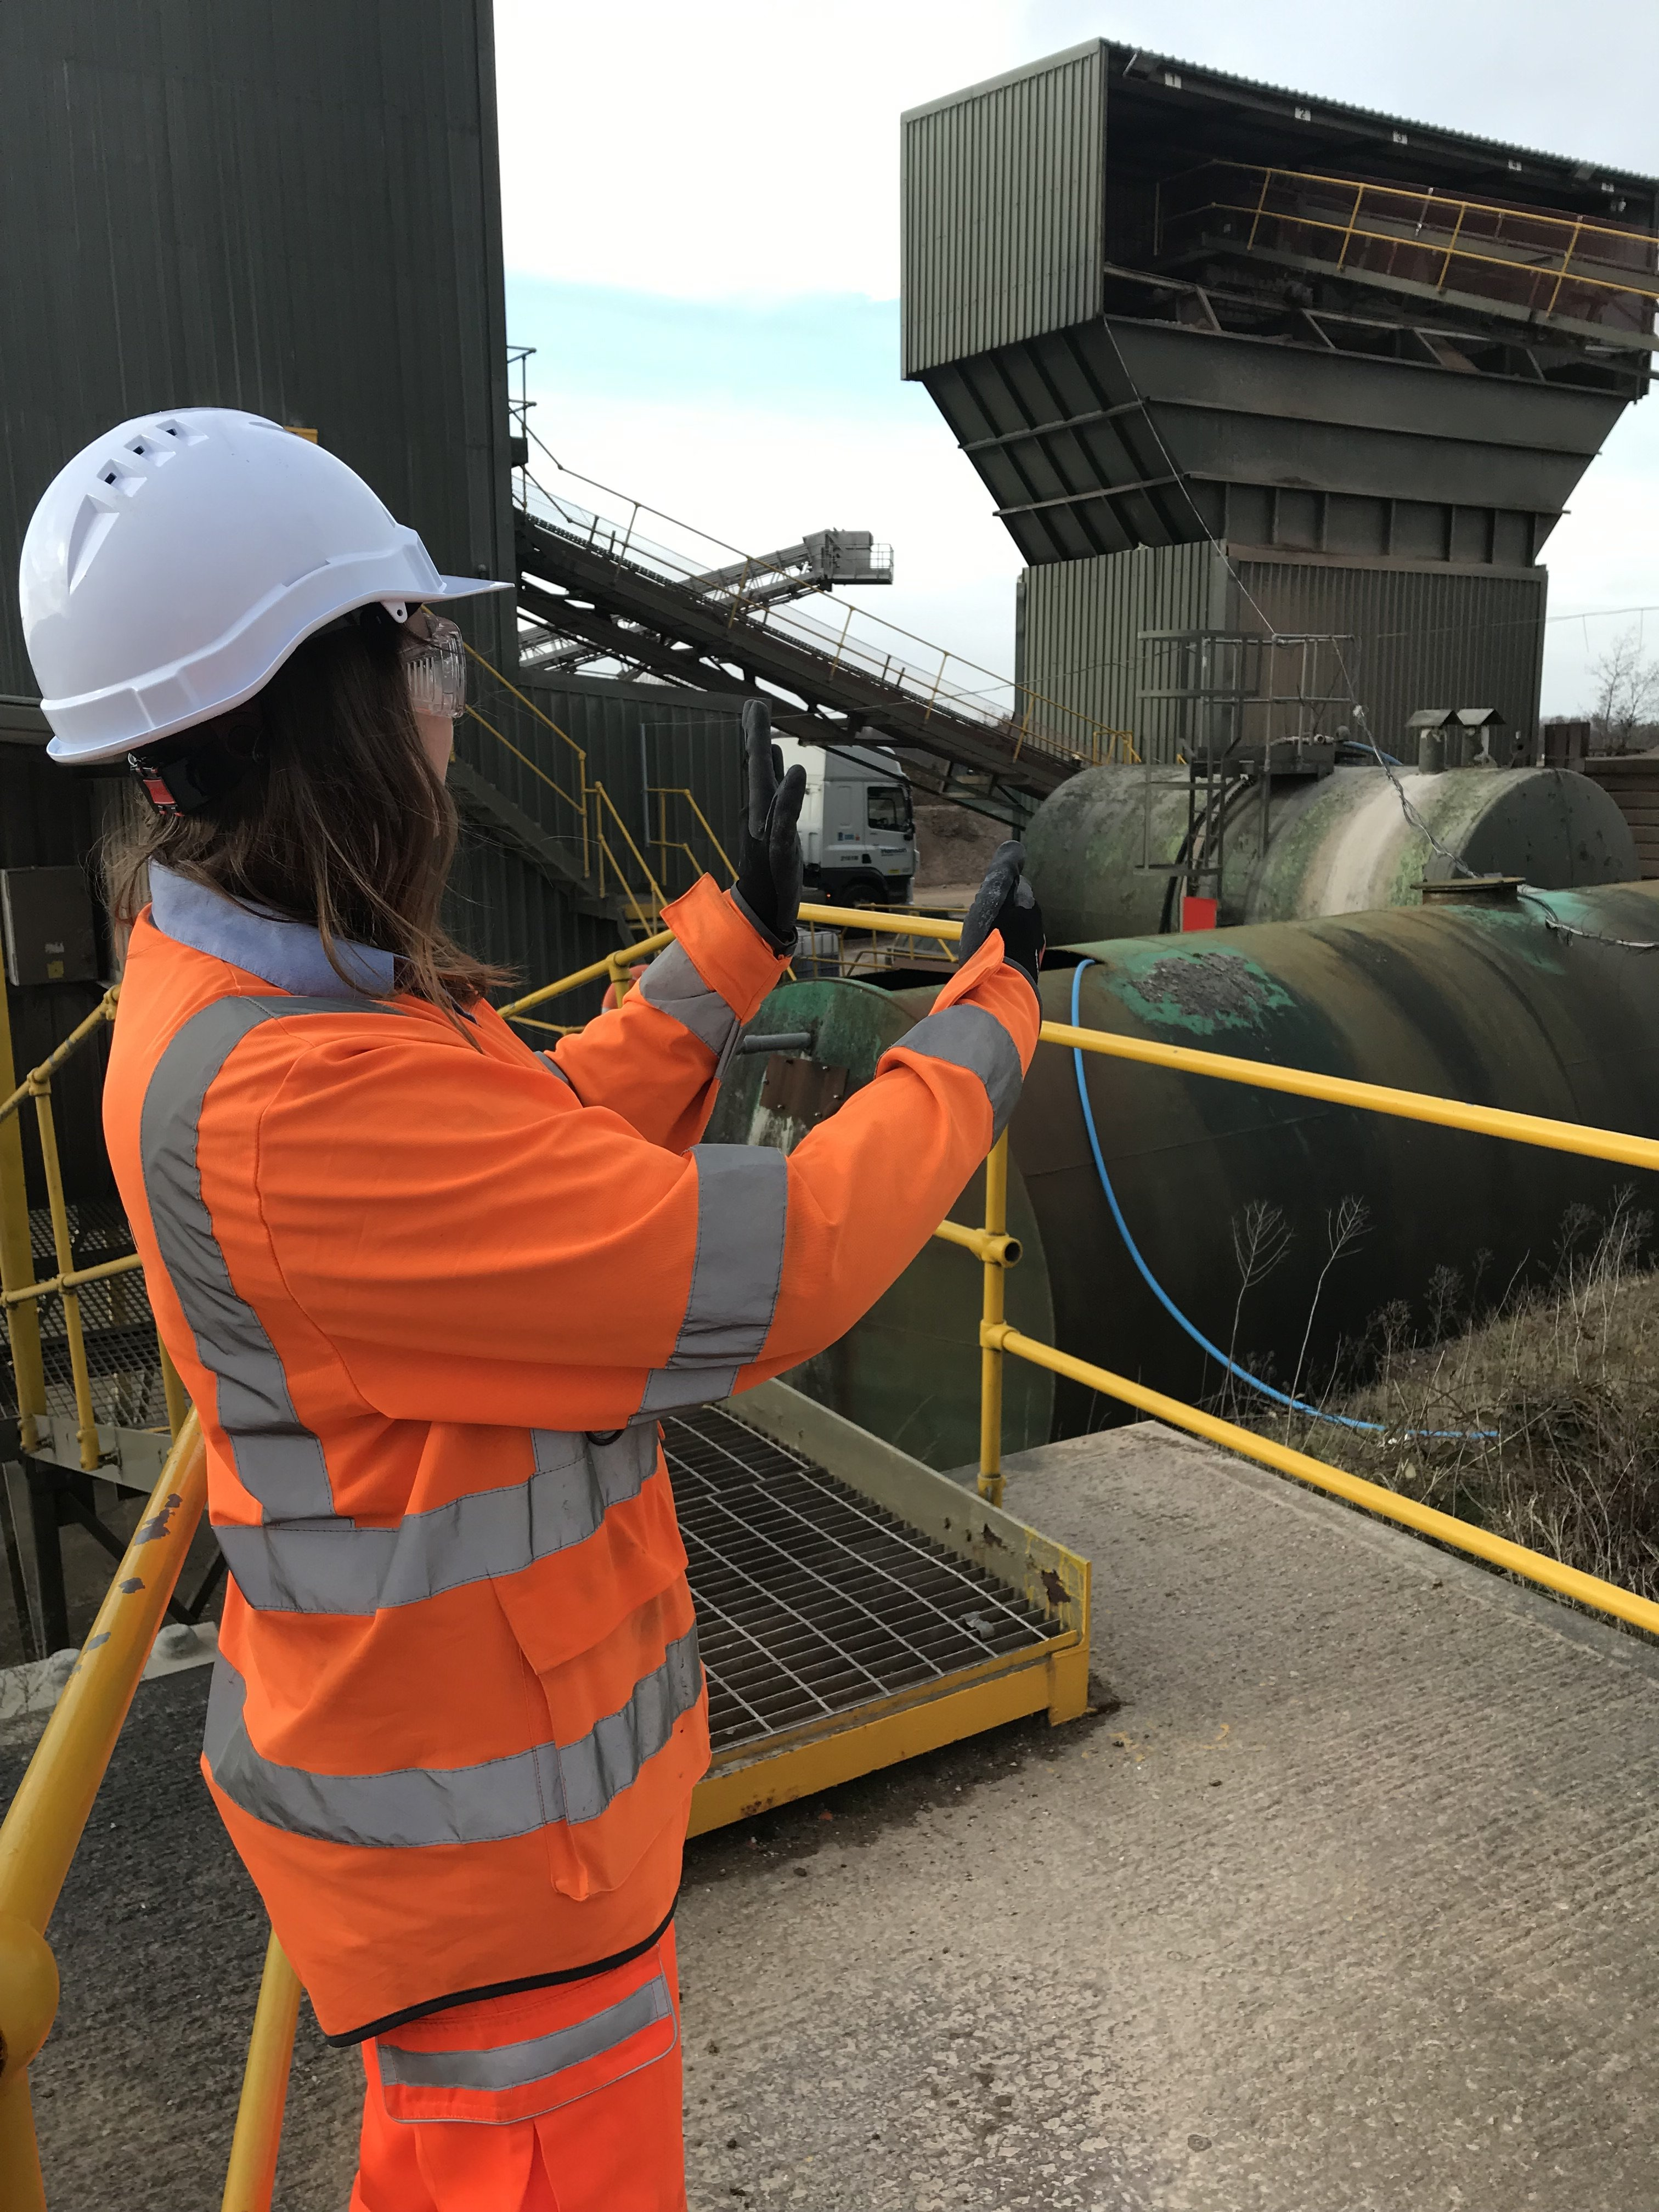 Emily at Weeford concrete plant